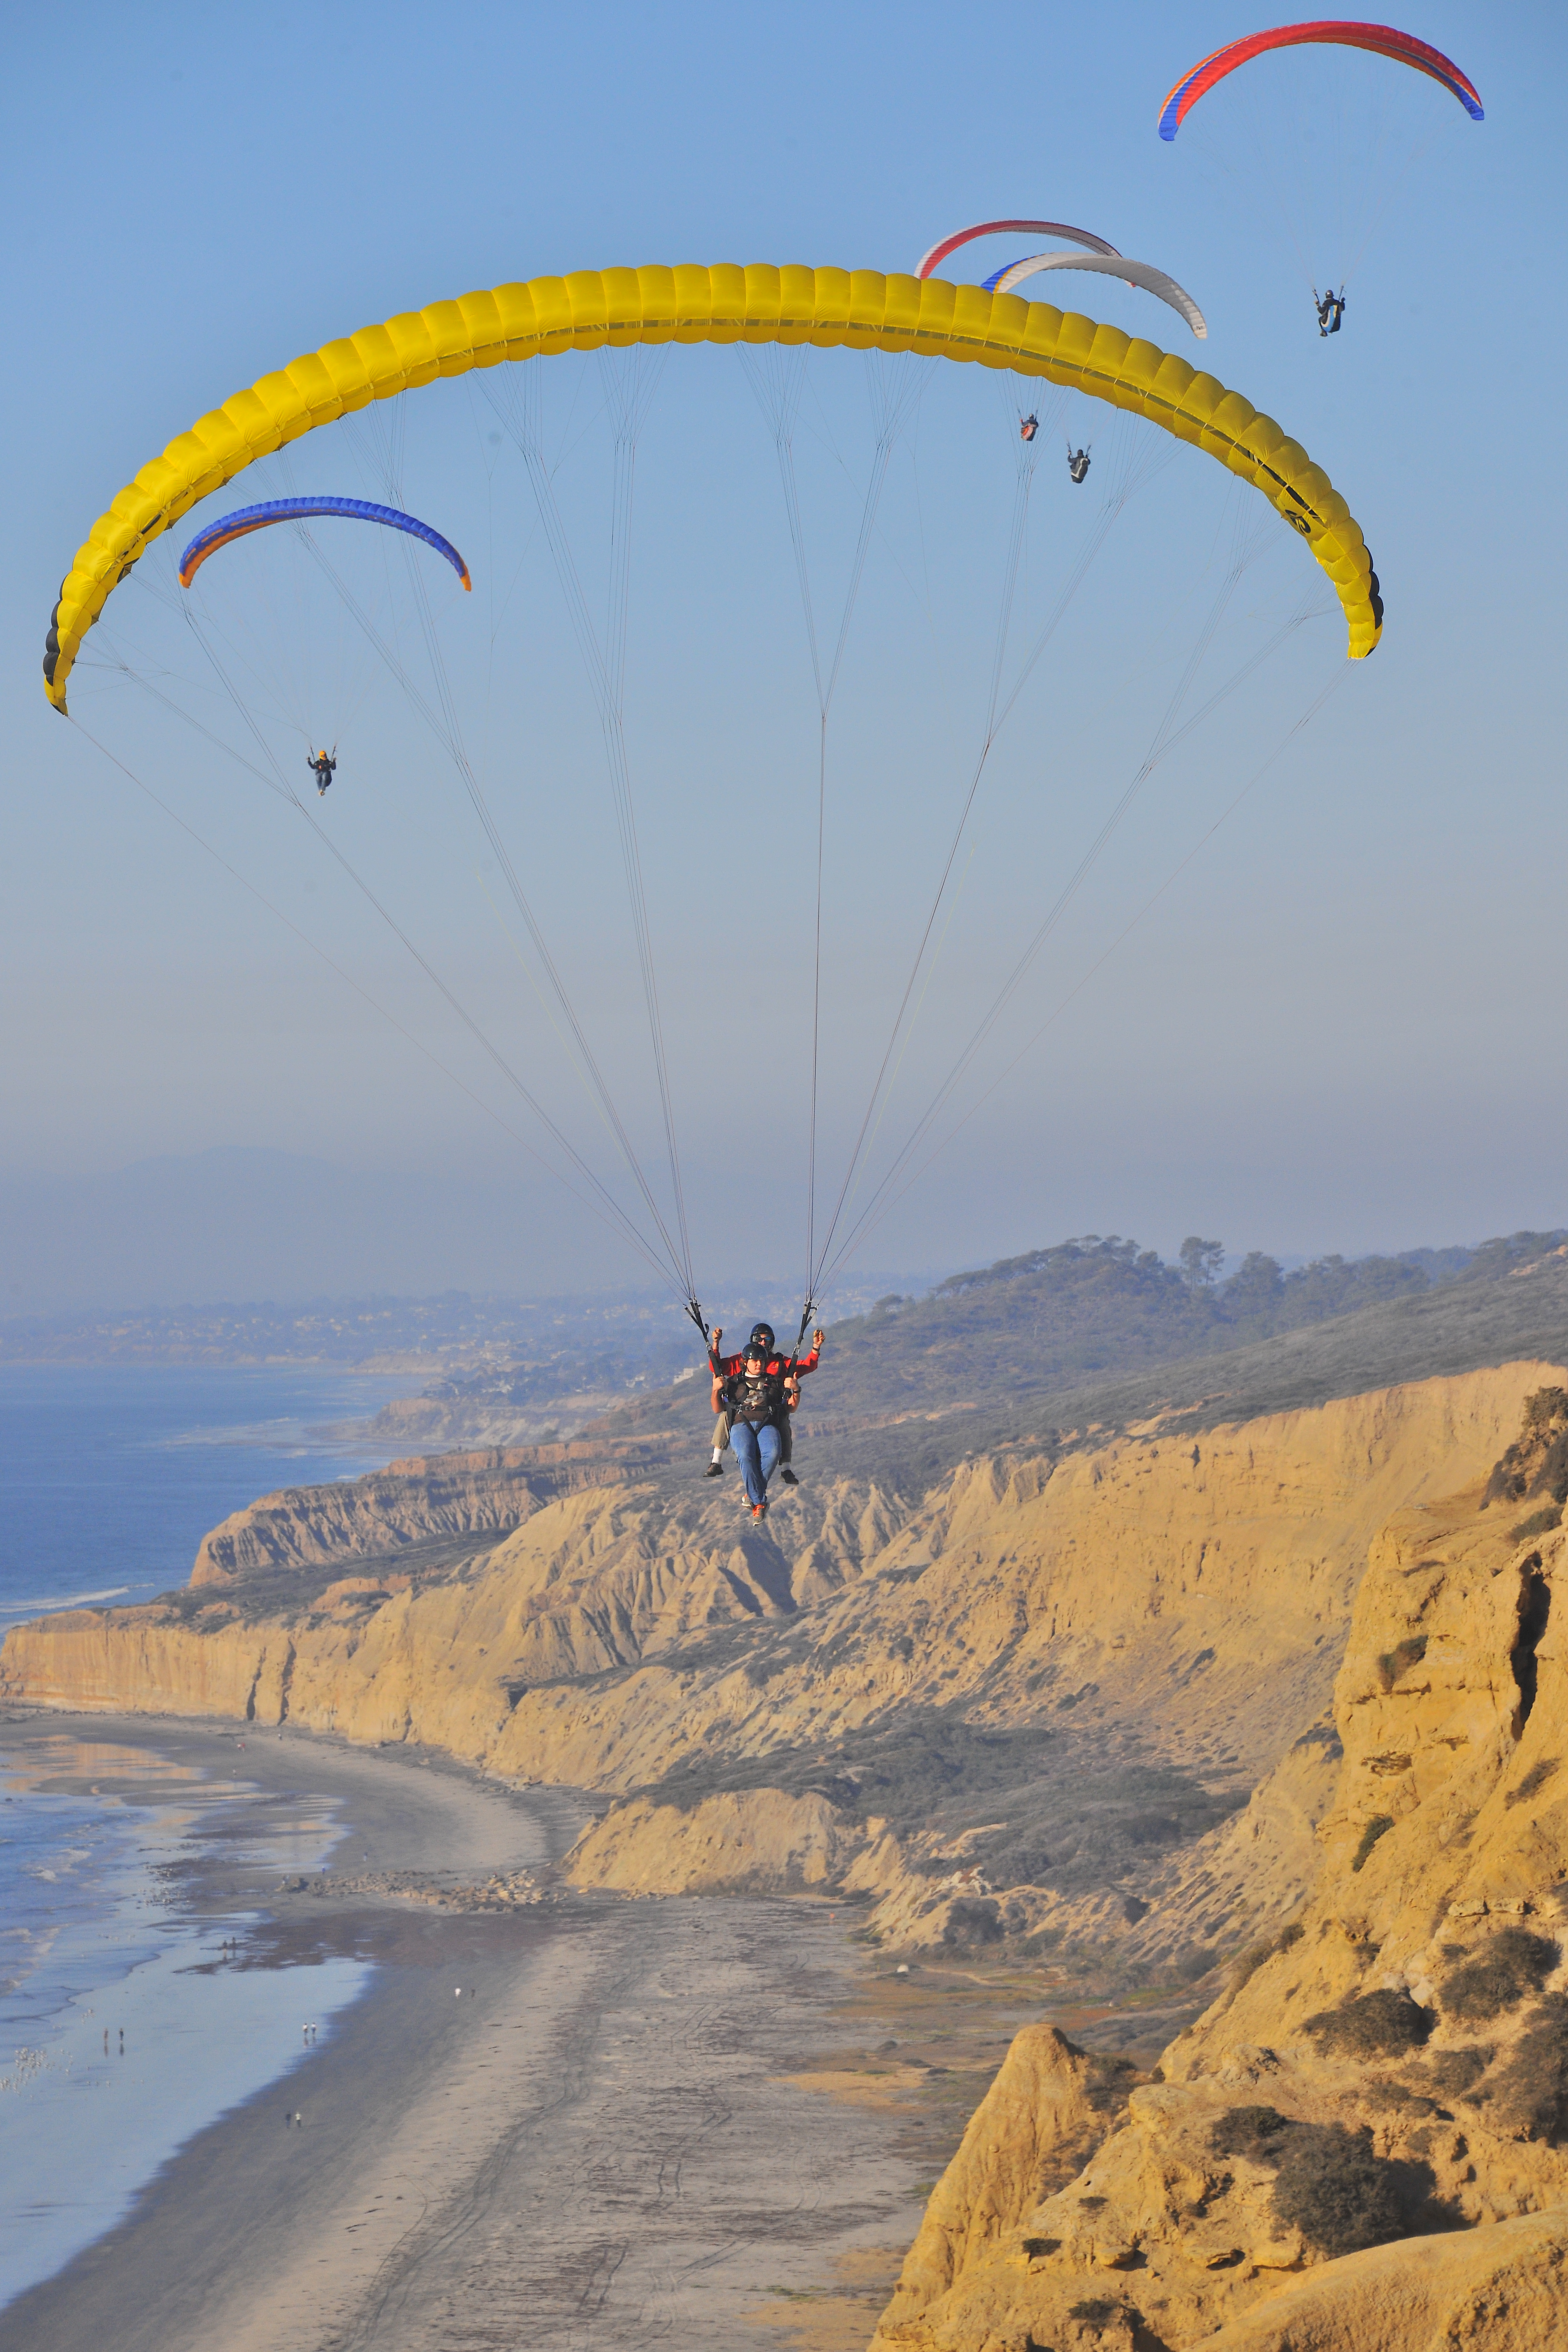 La Jolla: Paragliding at the Torrey Pines Gliderport  The